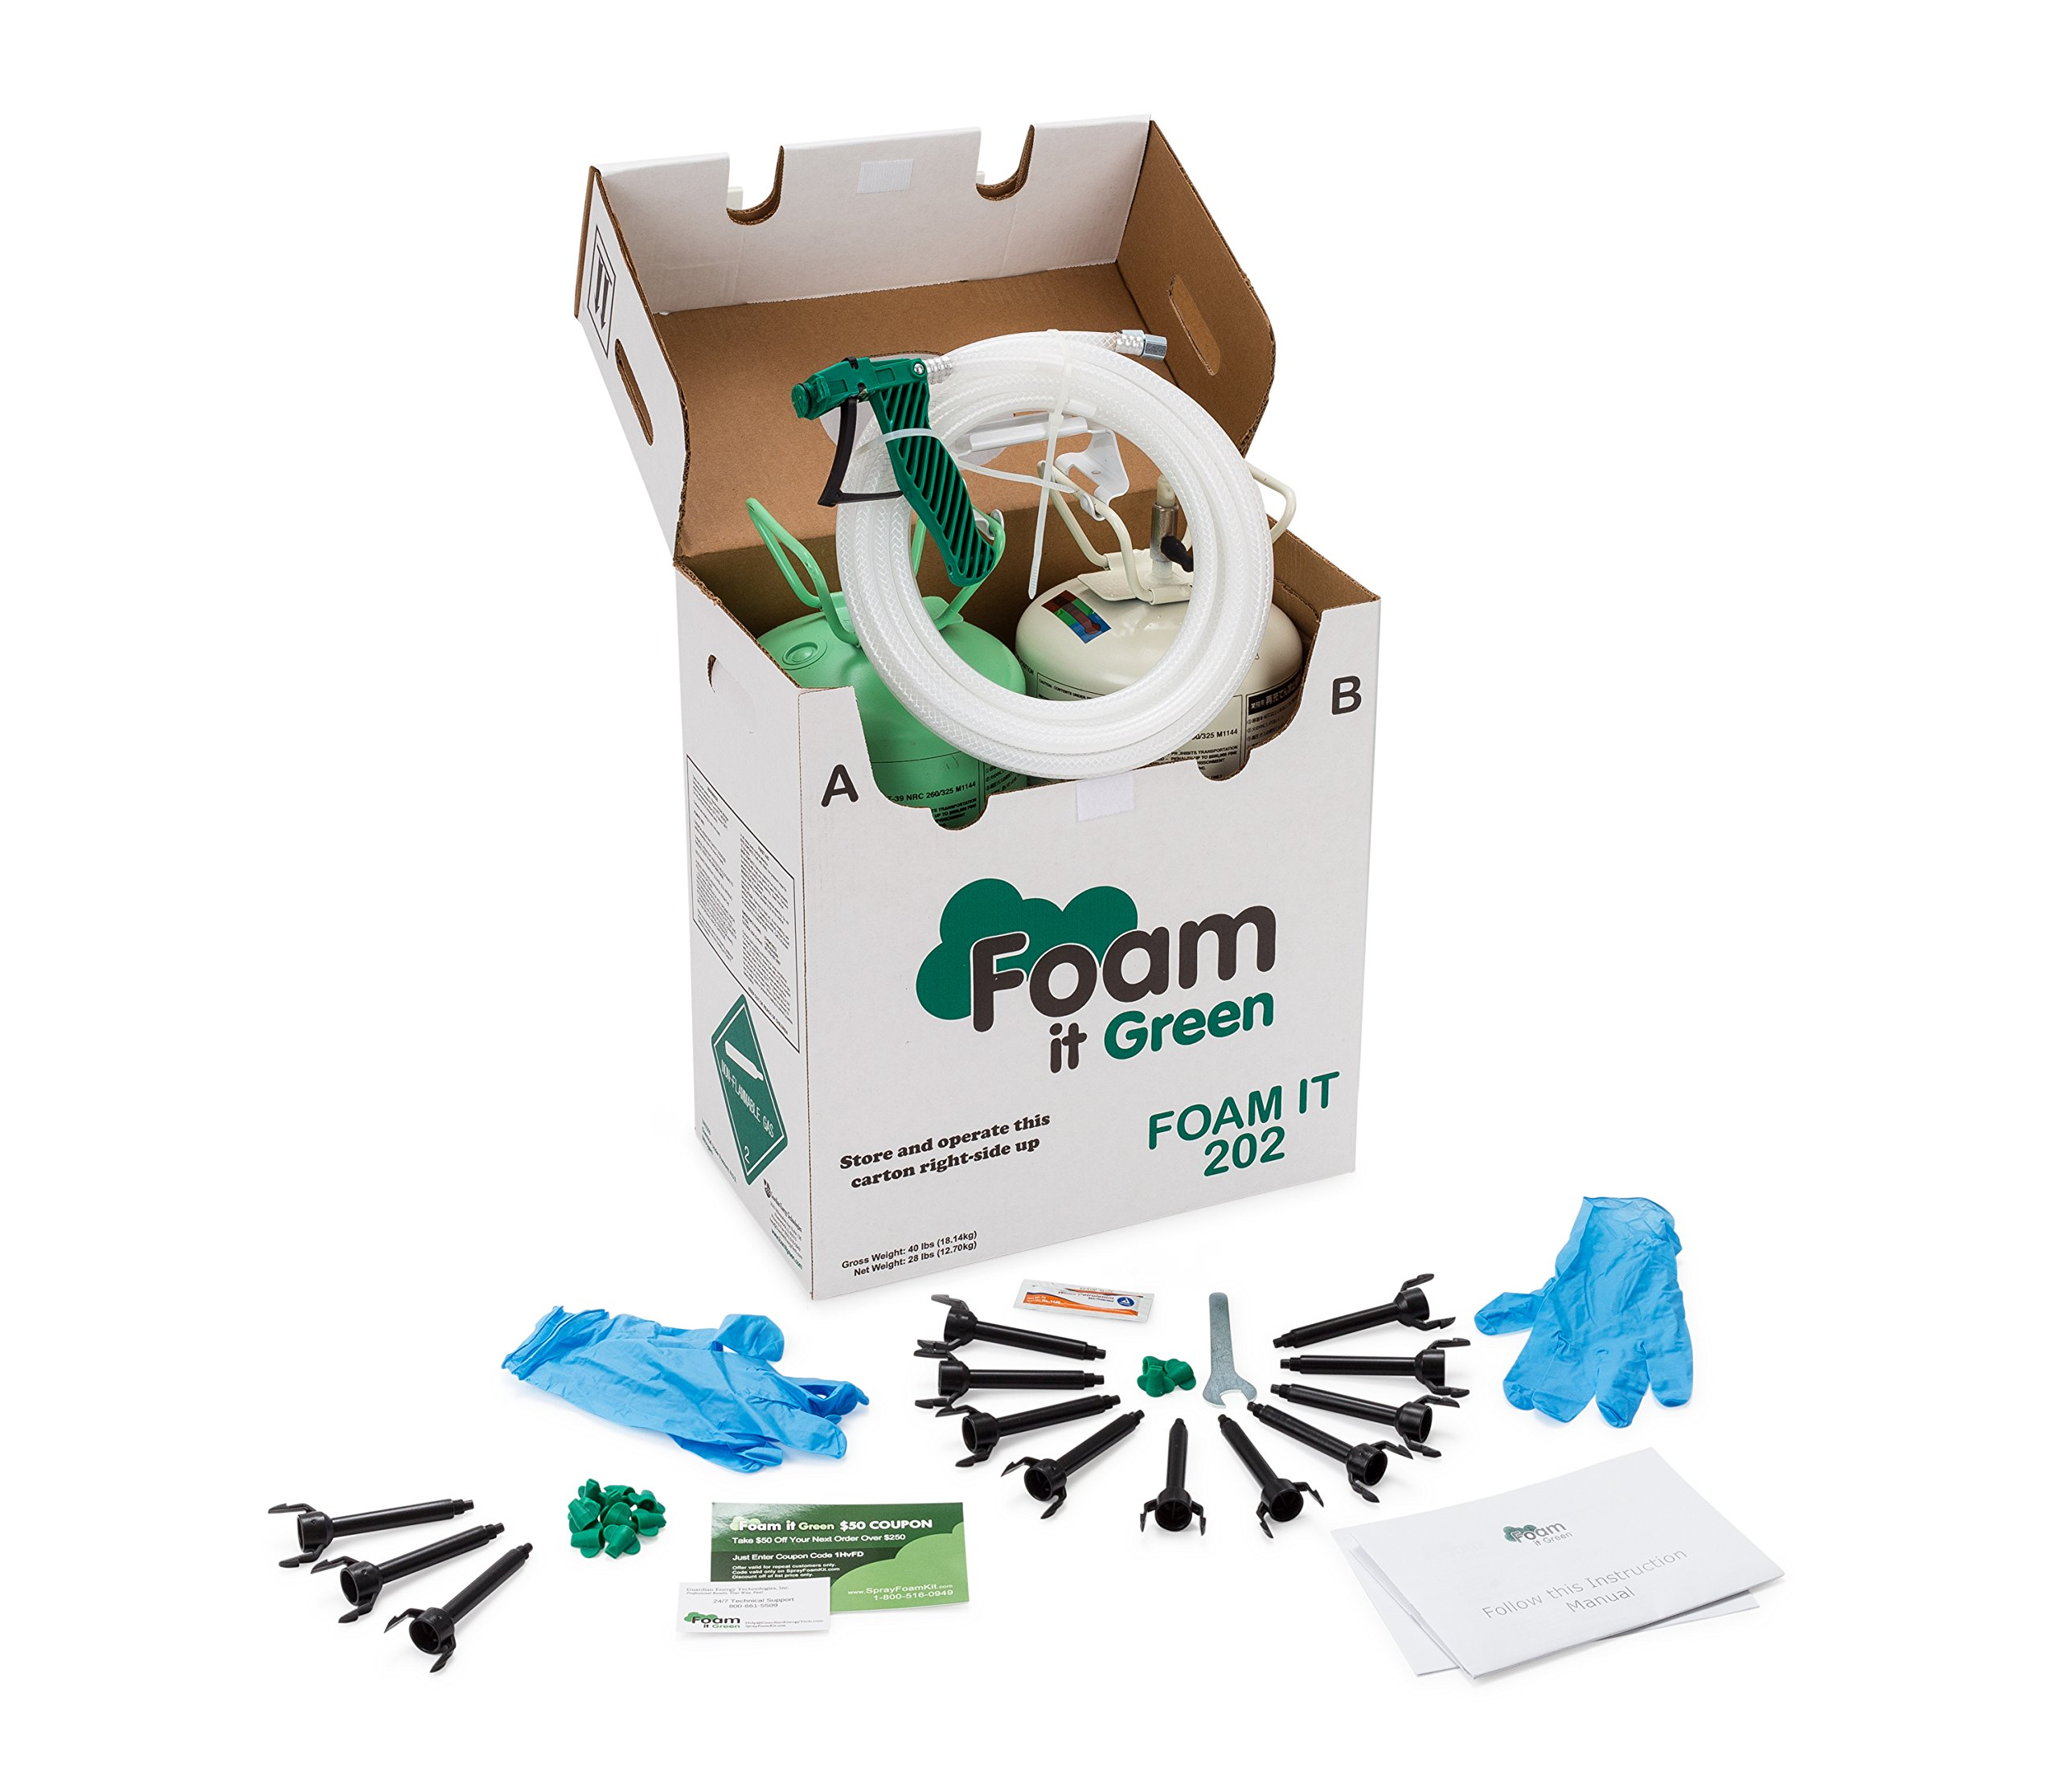 Foam It 202 Fire Retardant Spray Foam Insulation Kit (202) by Foam It Green